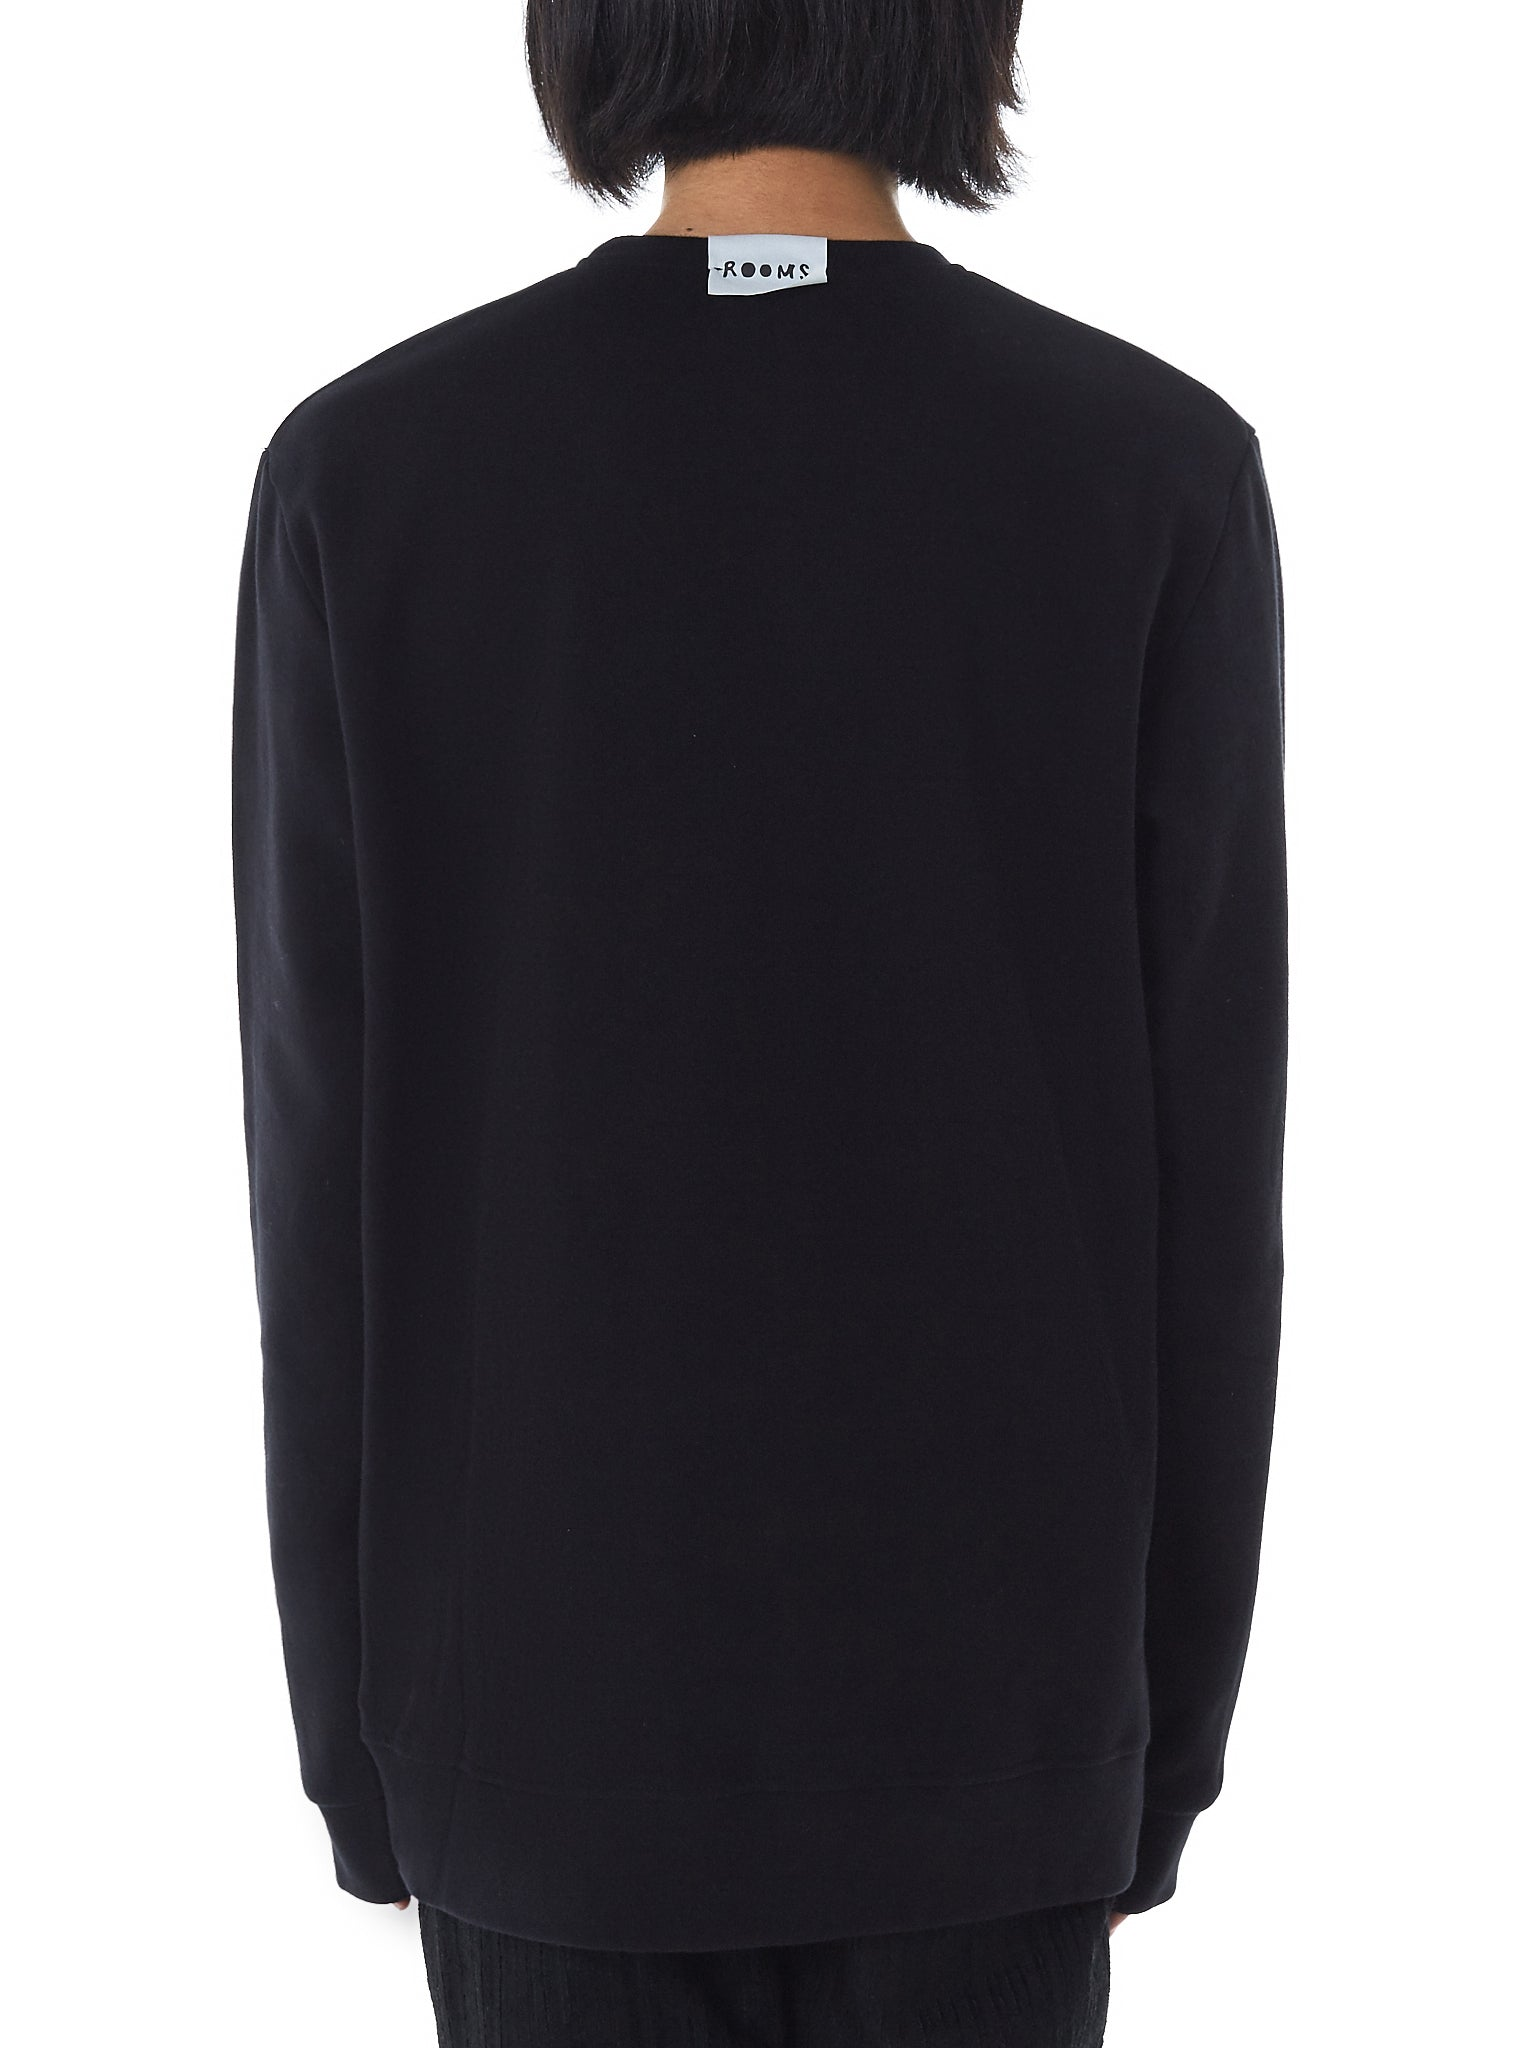 Lost & Found Rooms Sweater - Hlorenzo Back